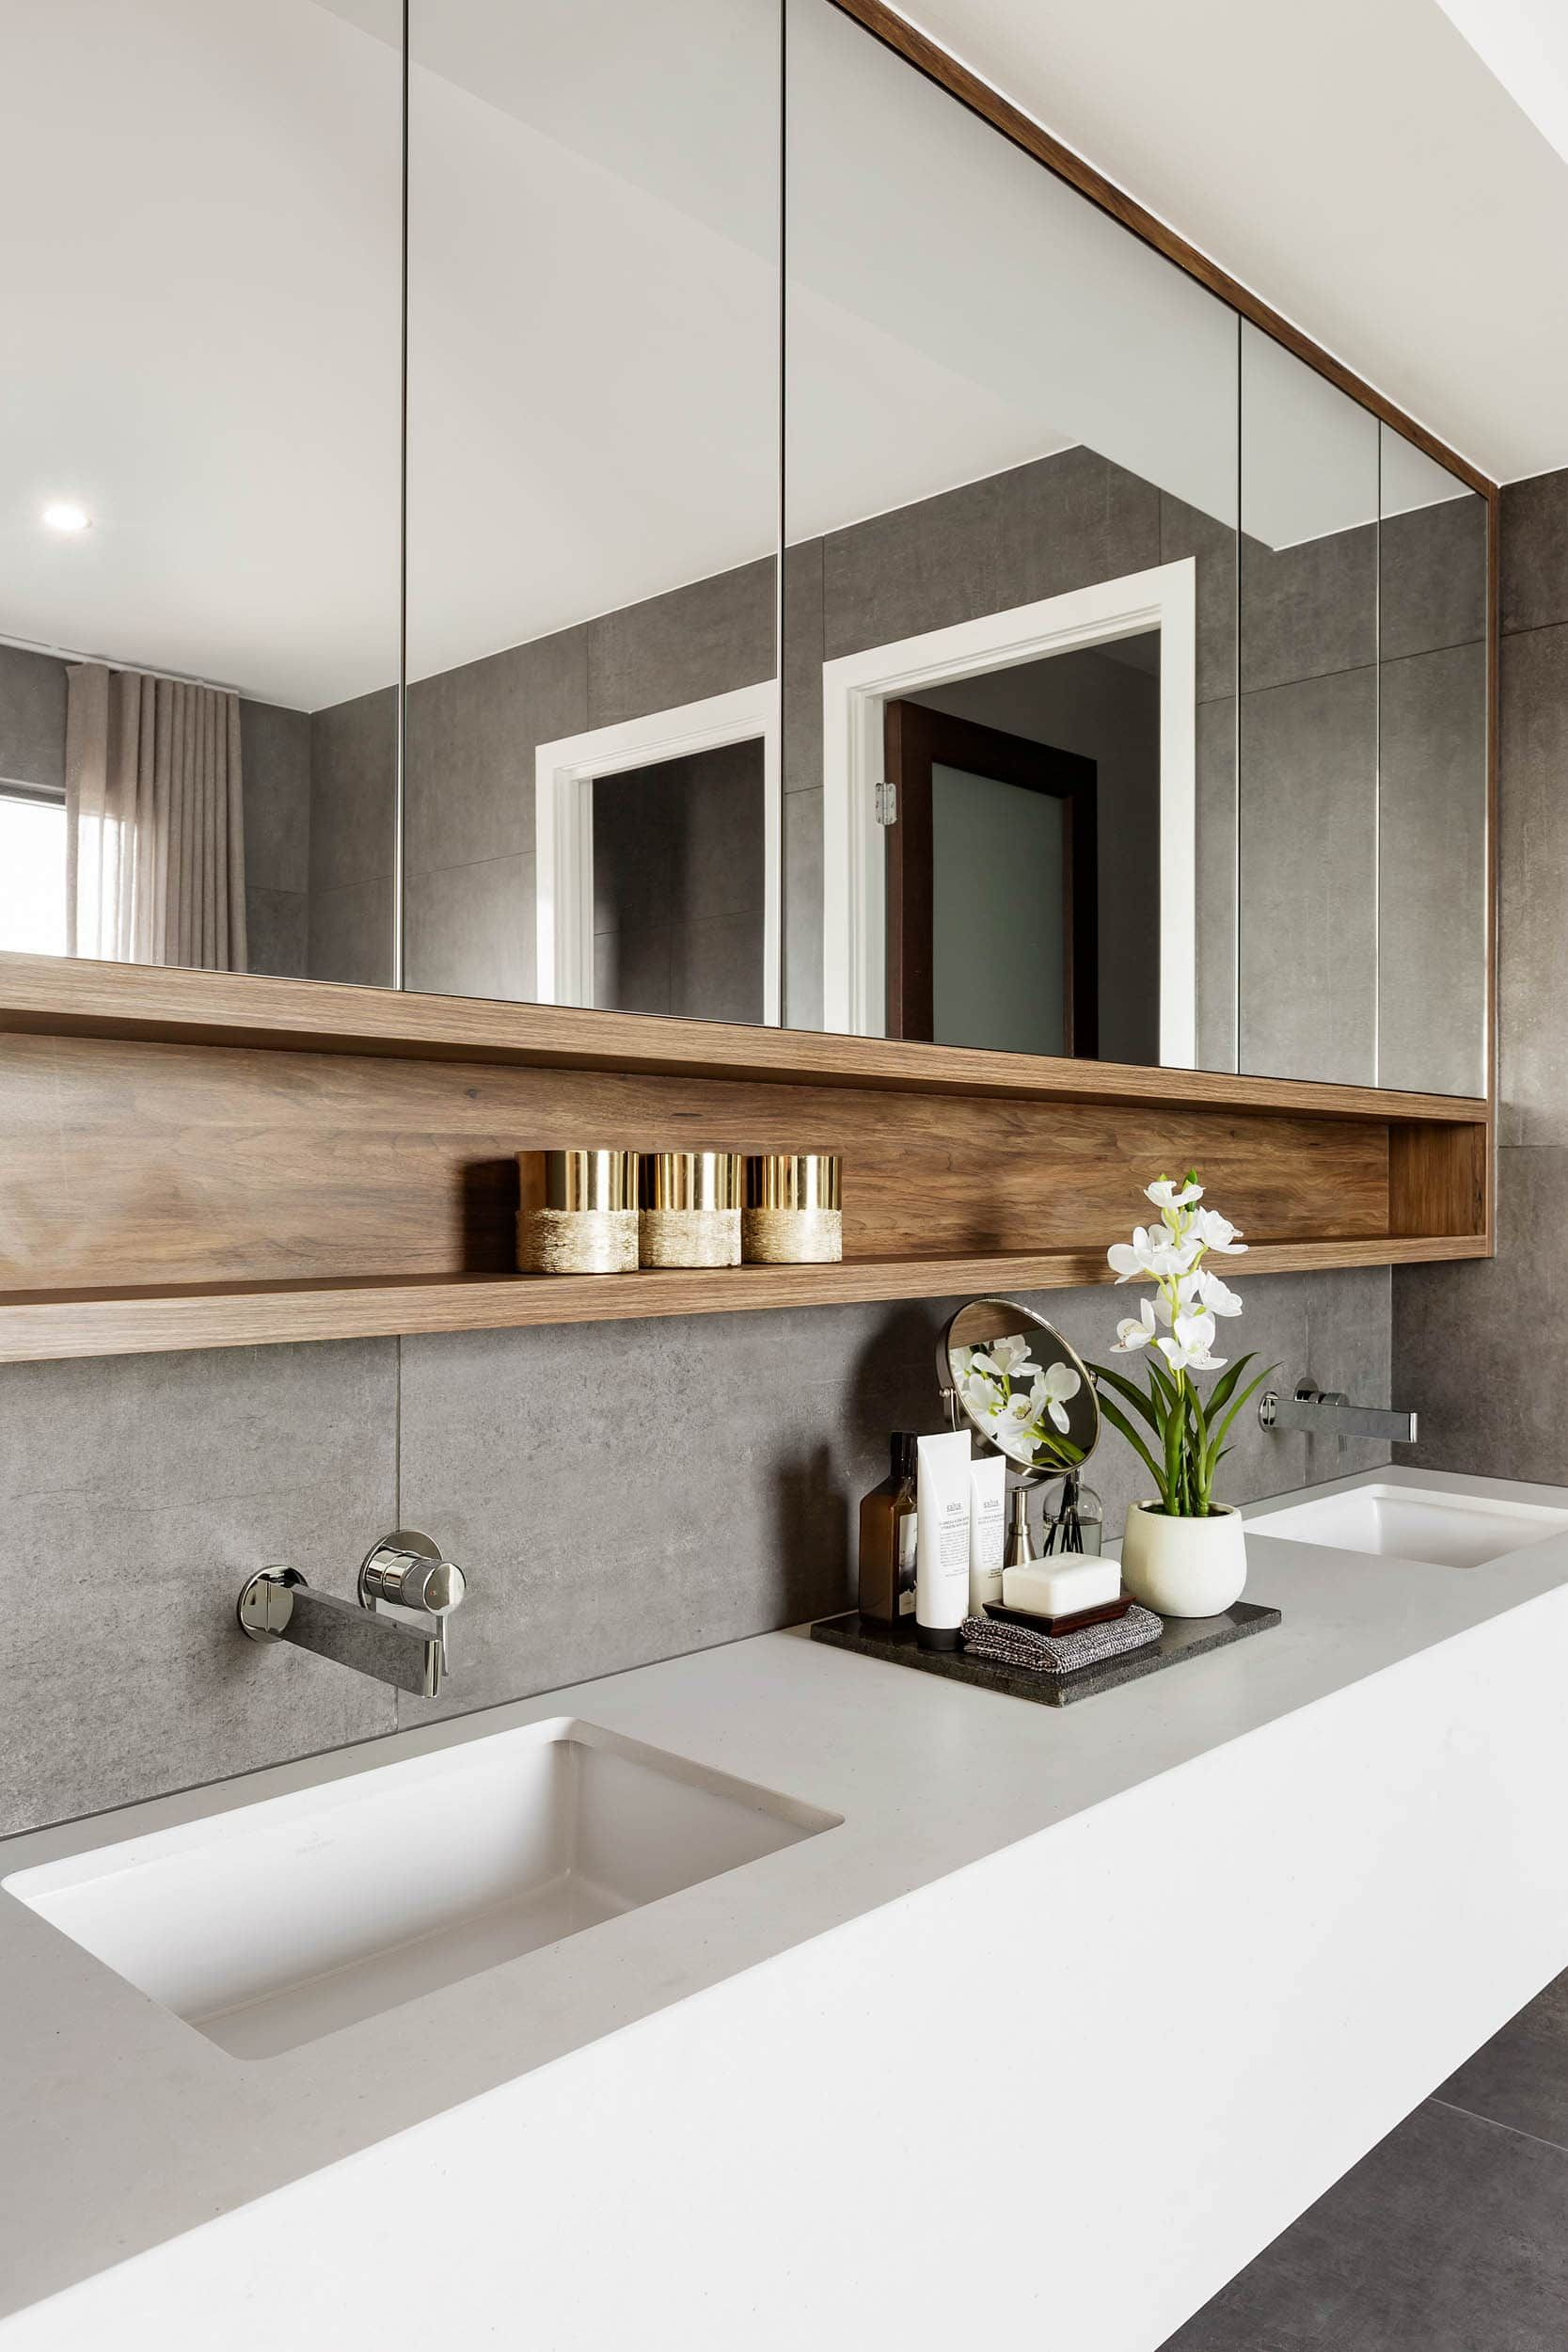 Dark Neutral Interior Design Ideas you can Steal for your Place